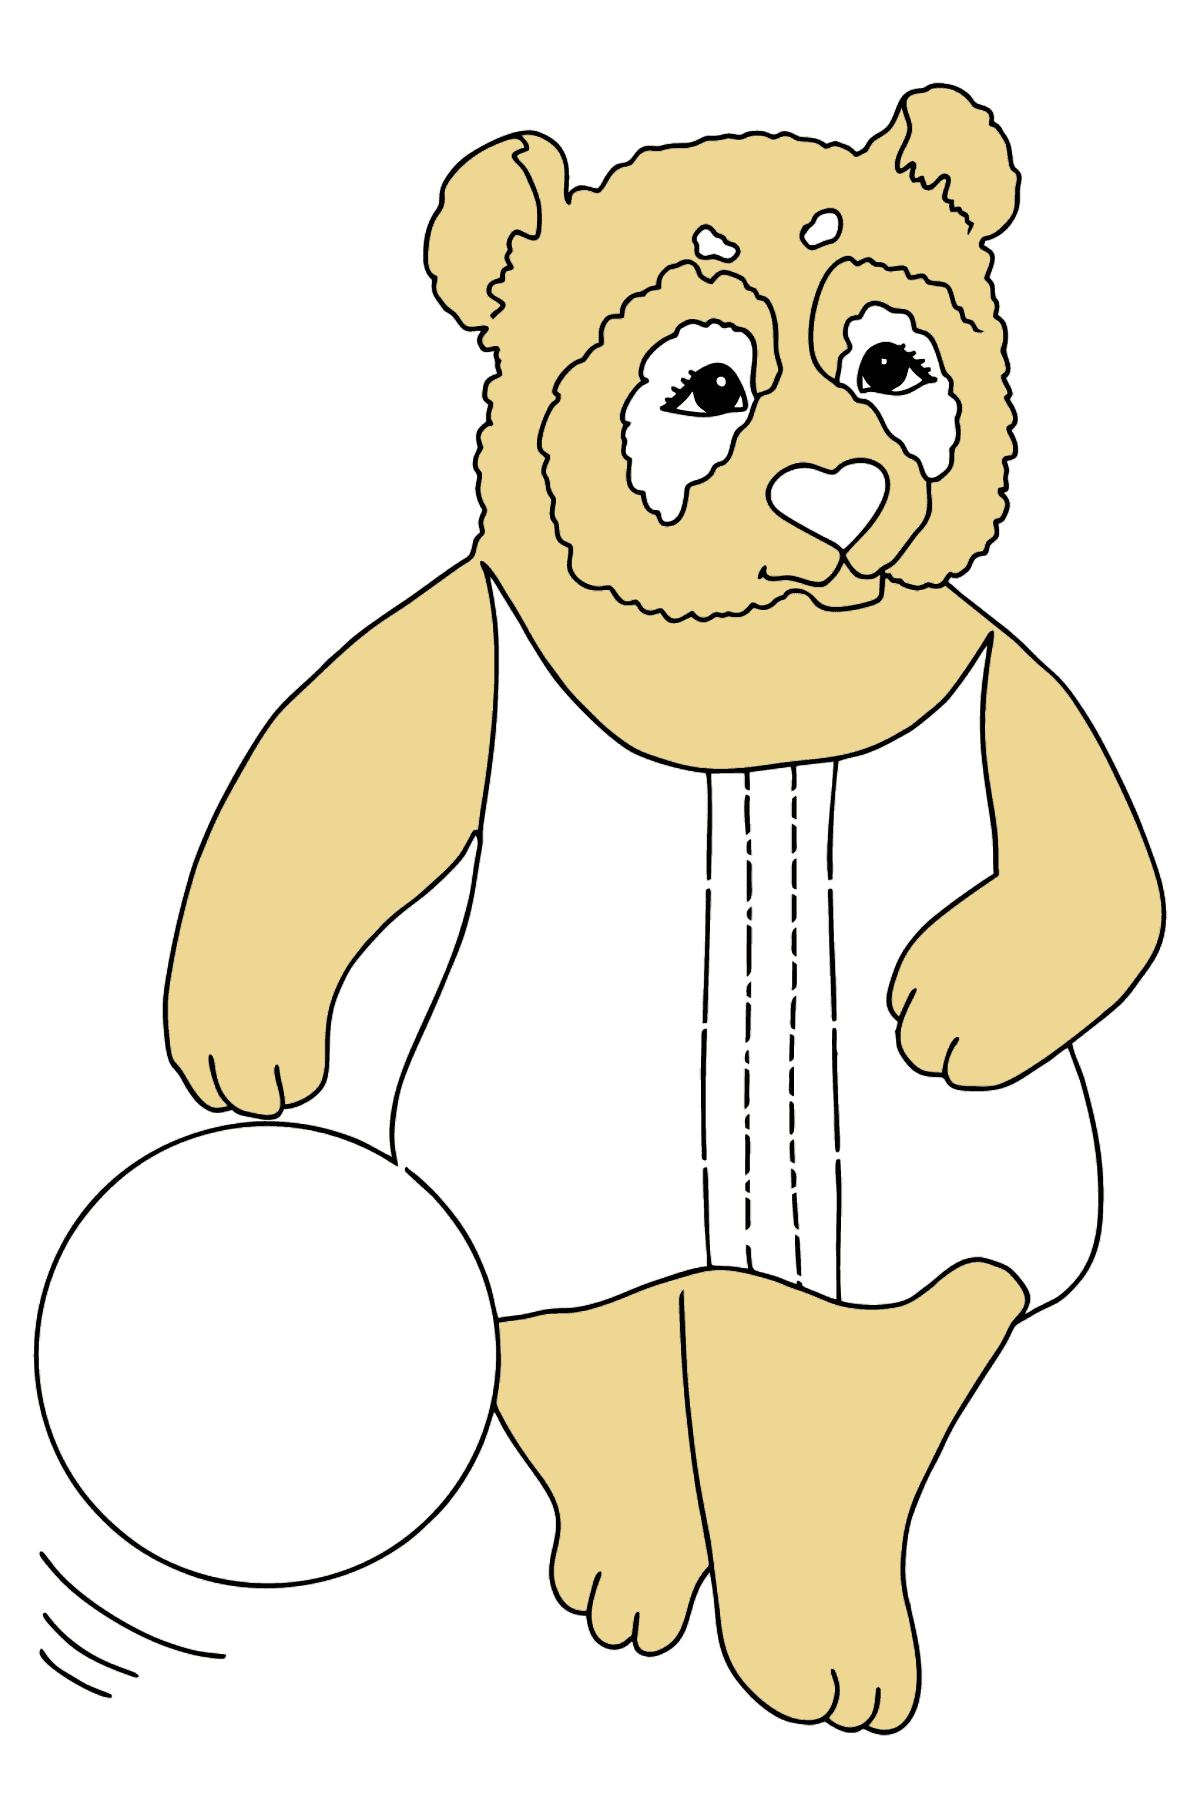 Coloring Picture - A Panda is Playing Ball - Coloring Pages for Kids